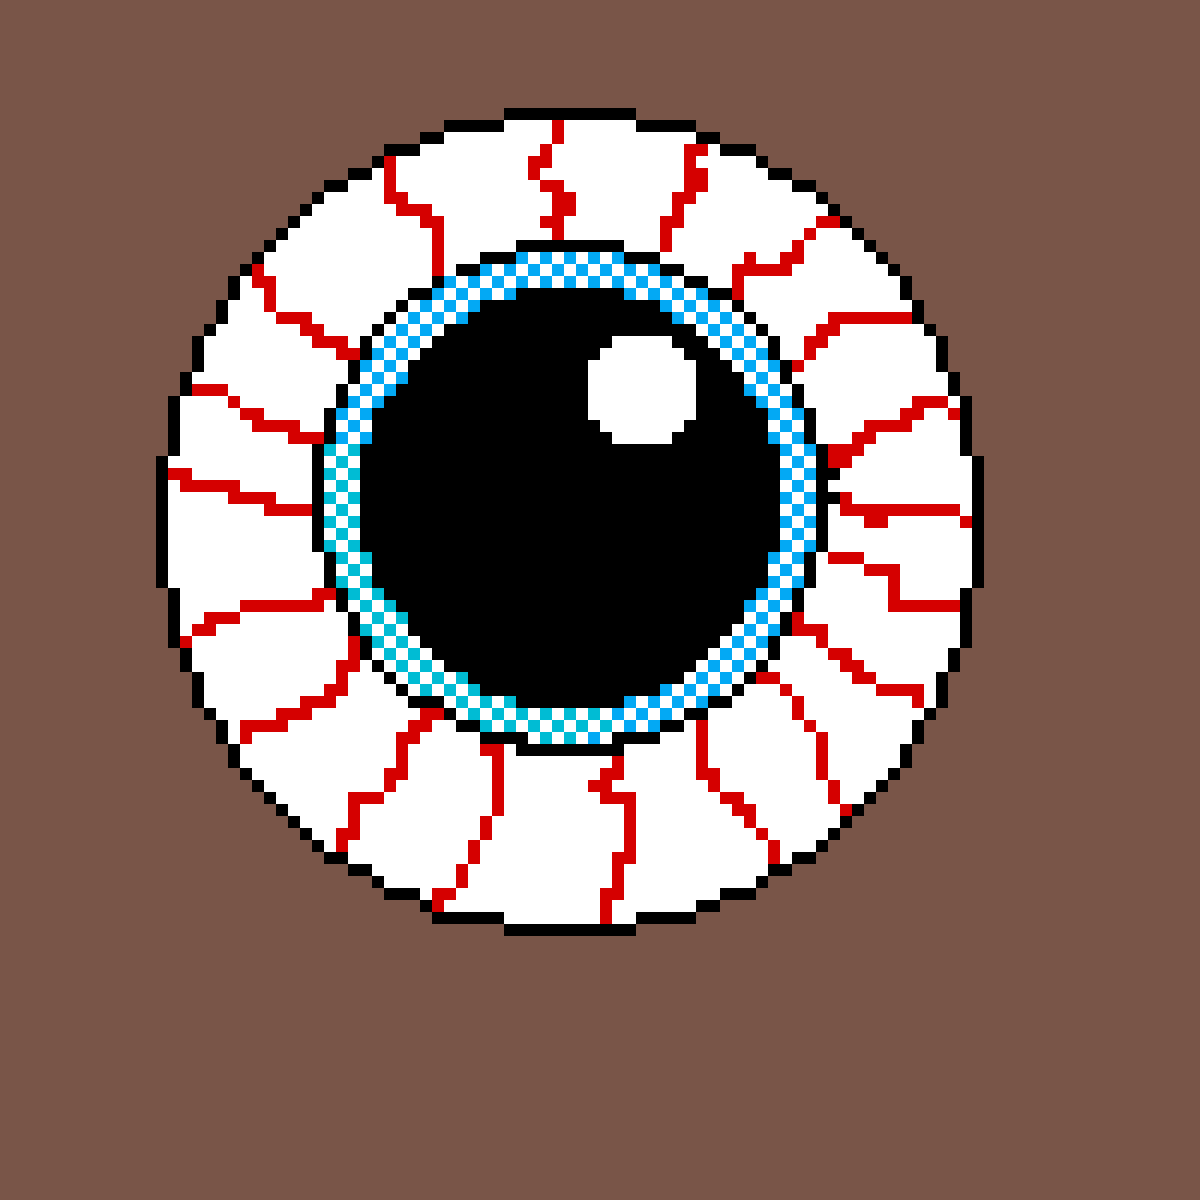 Eyeball by Alex-the-Boss